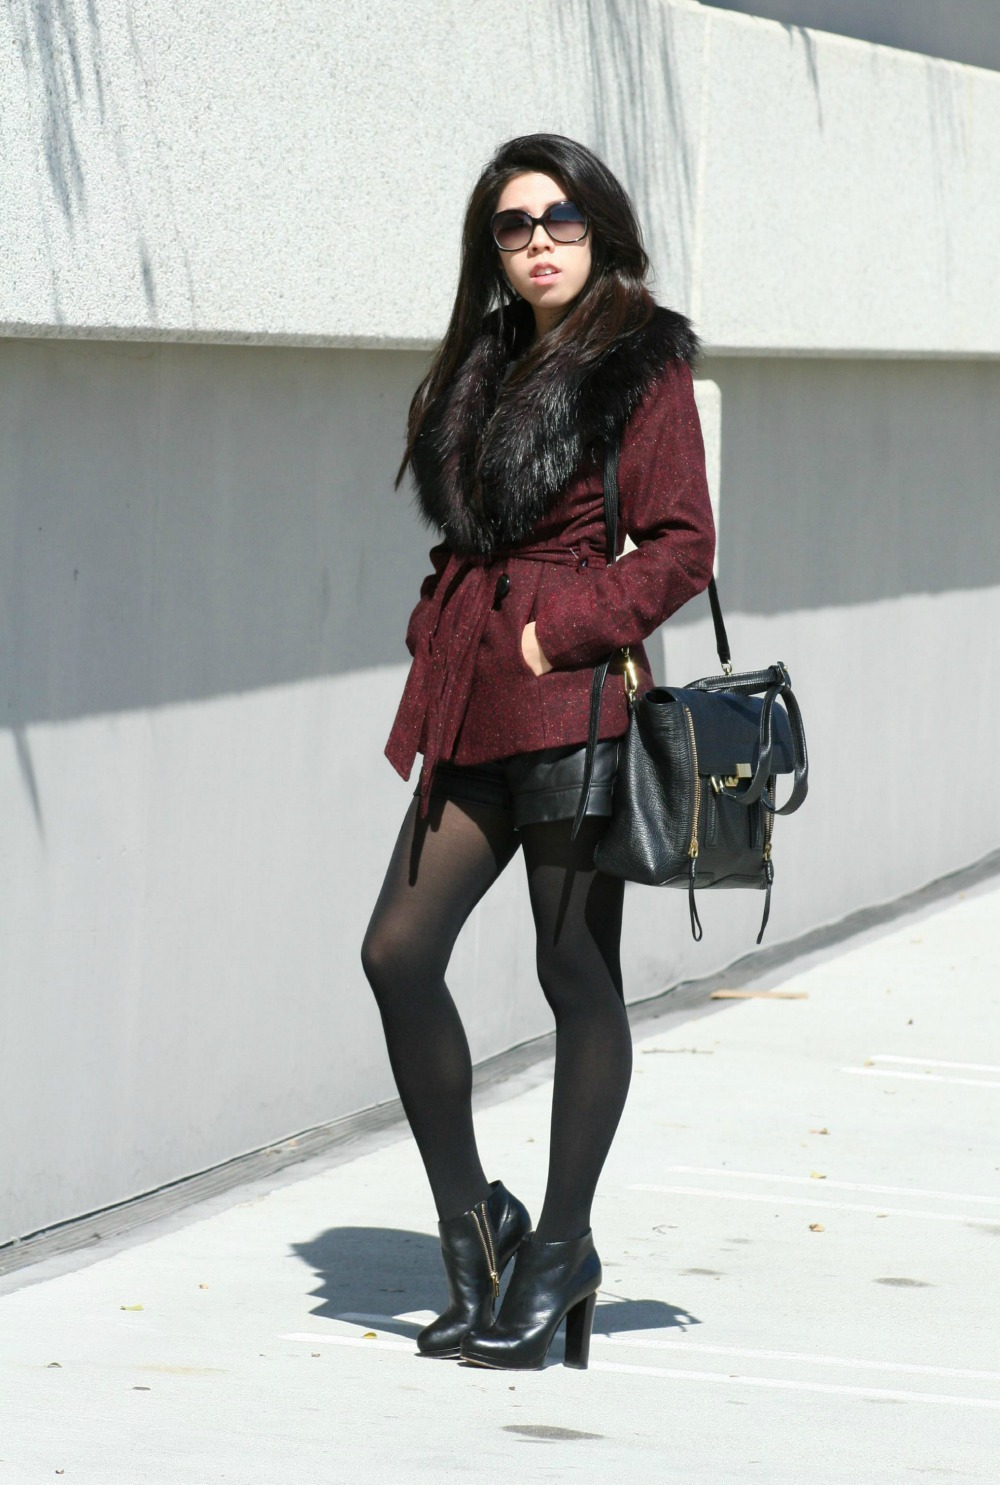 All Black Outfit_Black Michael Kors Leather Booties_Zara Lace Long Sleeve Bow Top_Leather Shorts_H&M Faux Fur Burgundy Coat